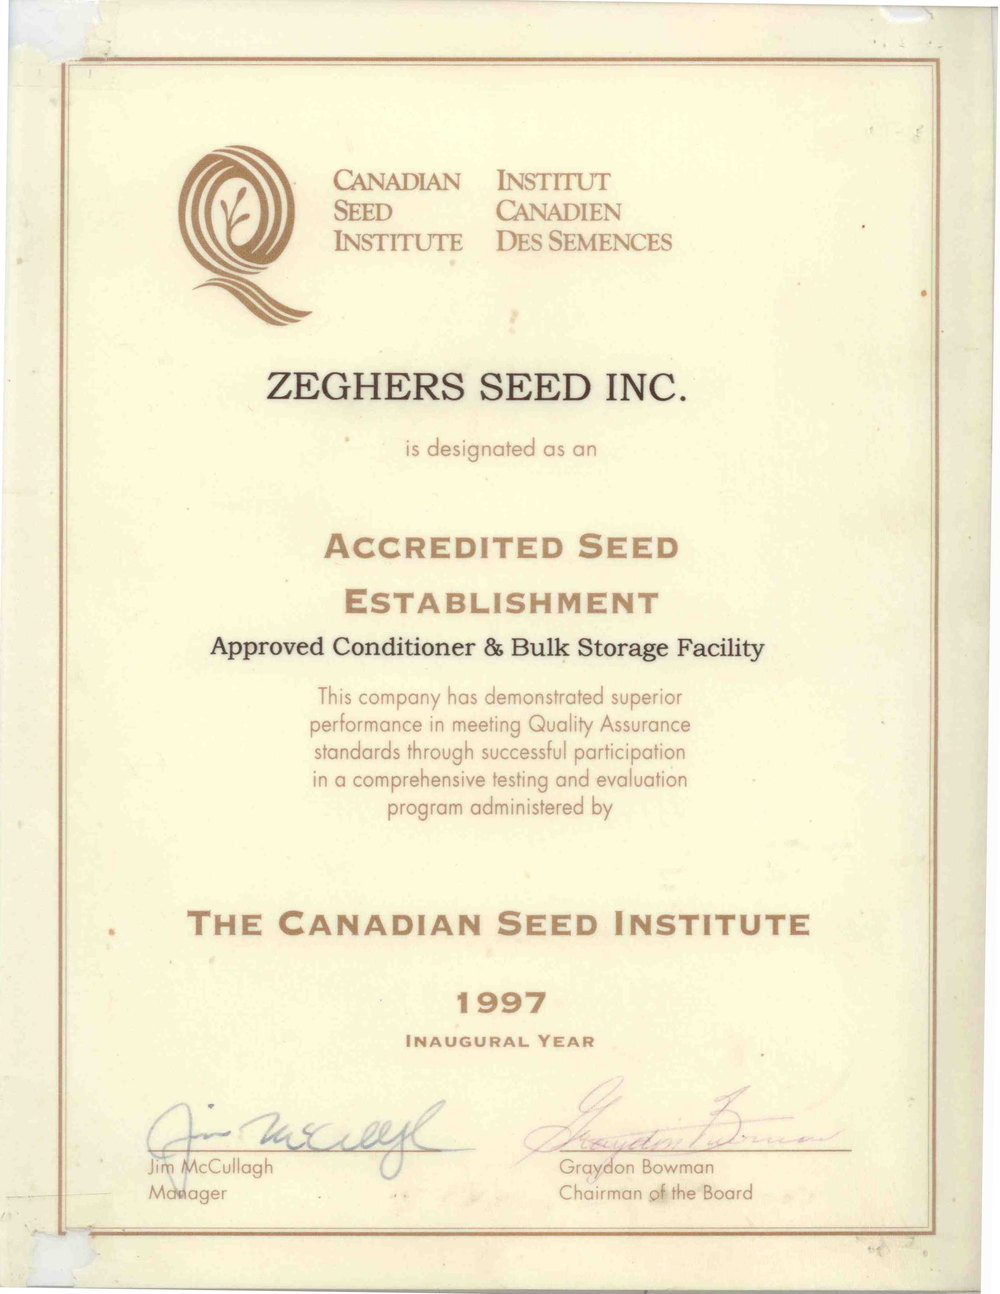 Accredited-Seed-Establishment.jpg